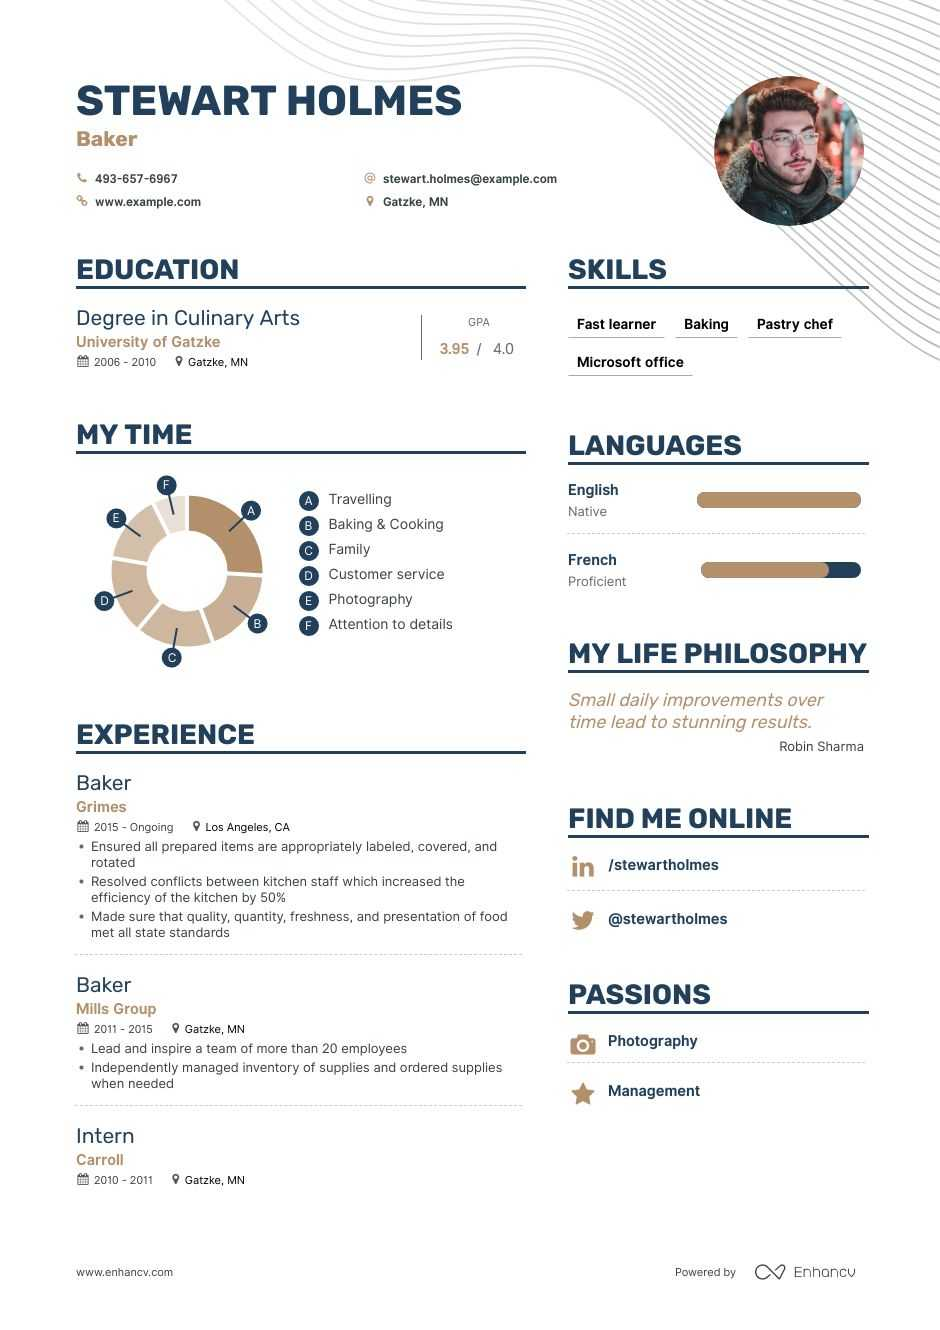 Resume for a bakery position how to write a contrast and comparison essay